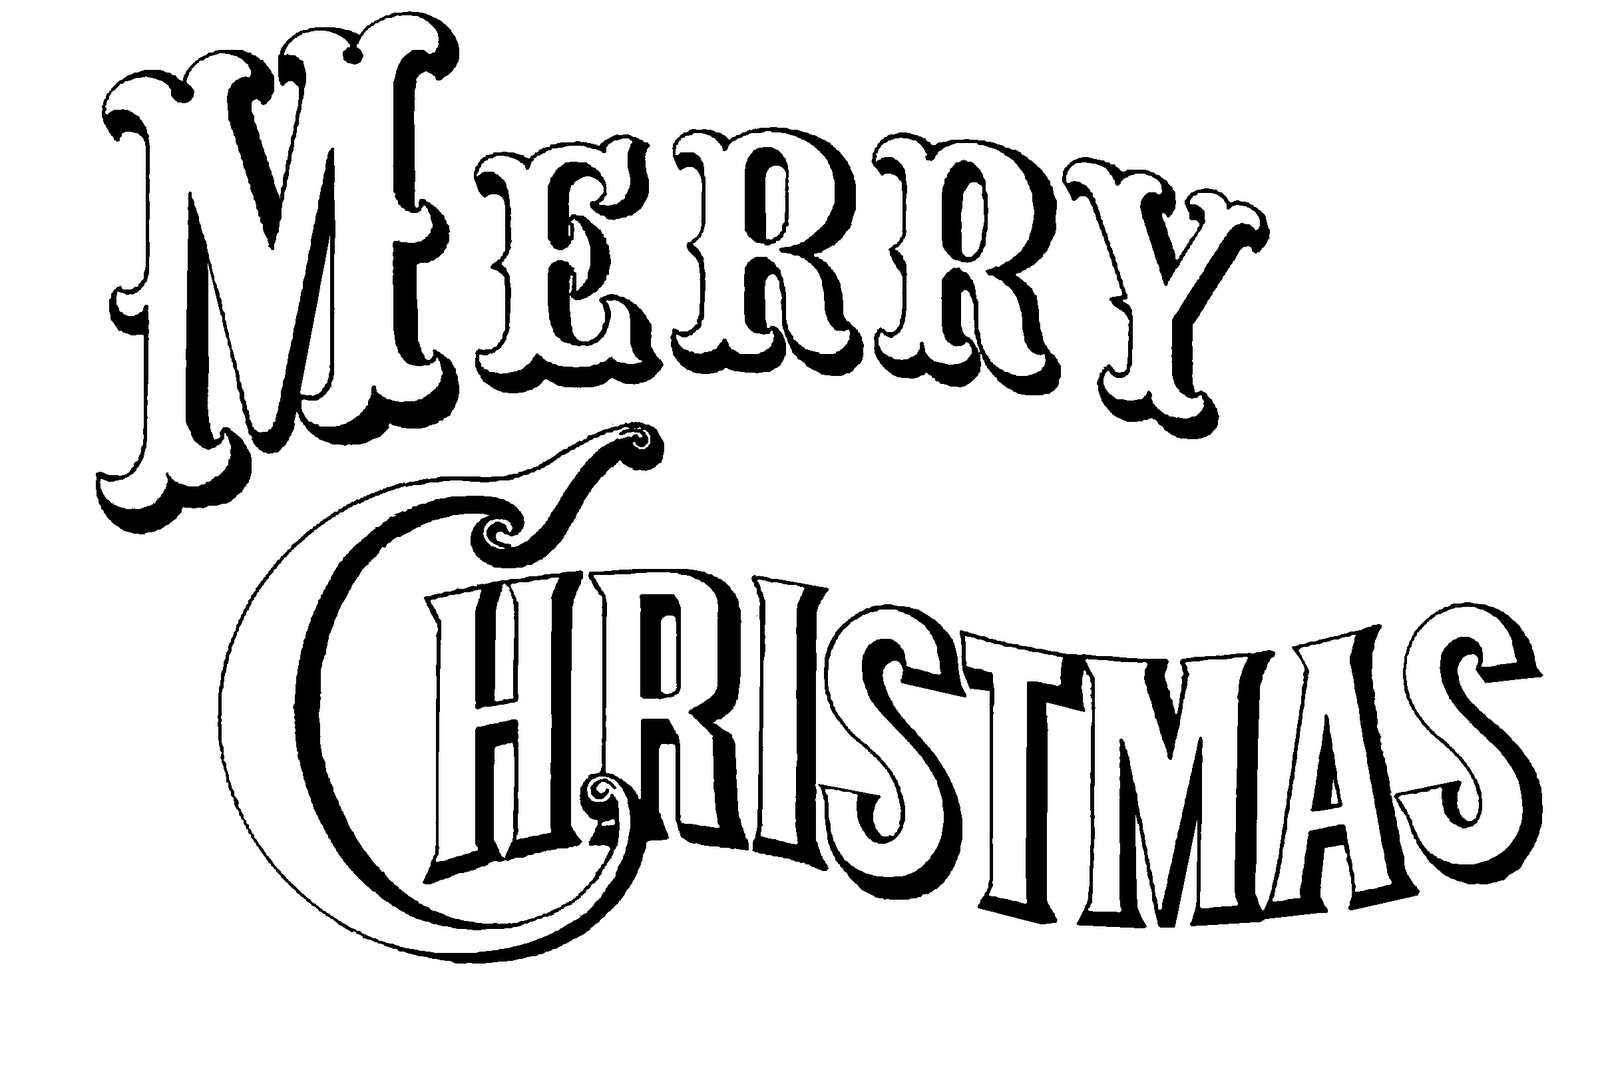 Merry Christmas Images Clip Art